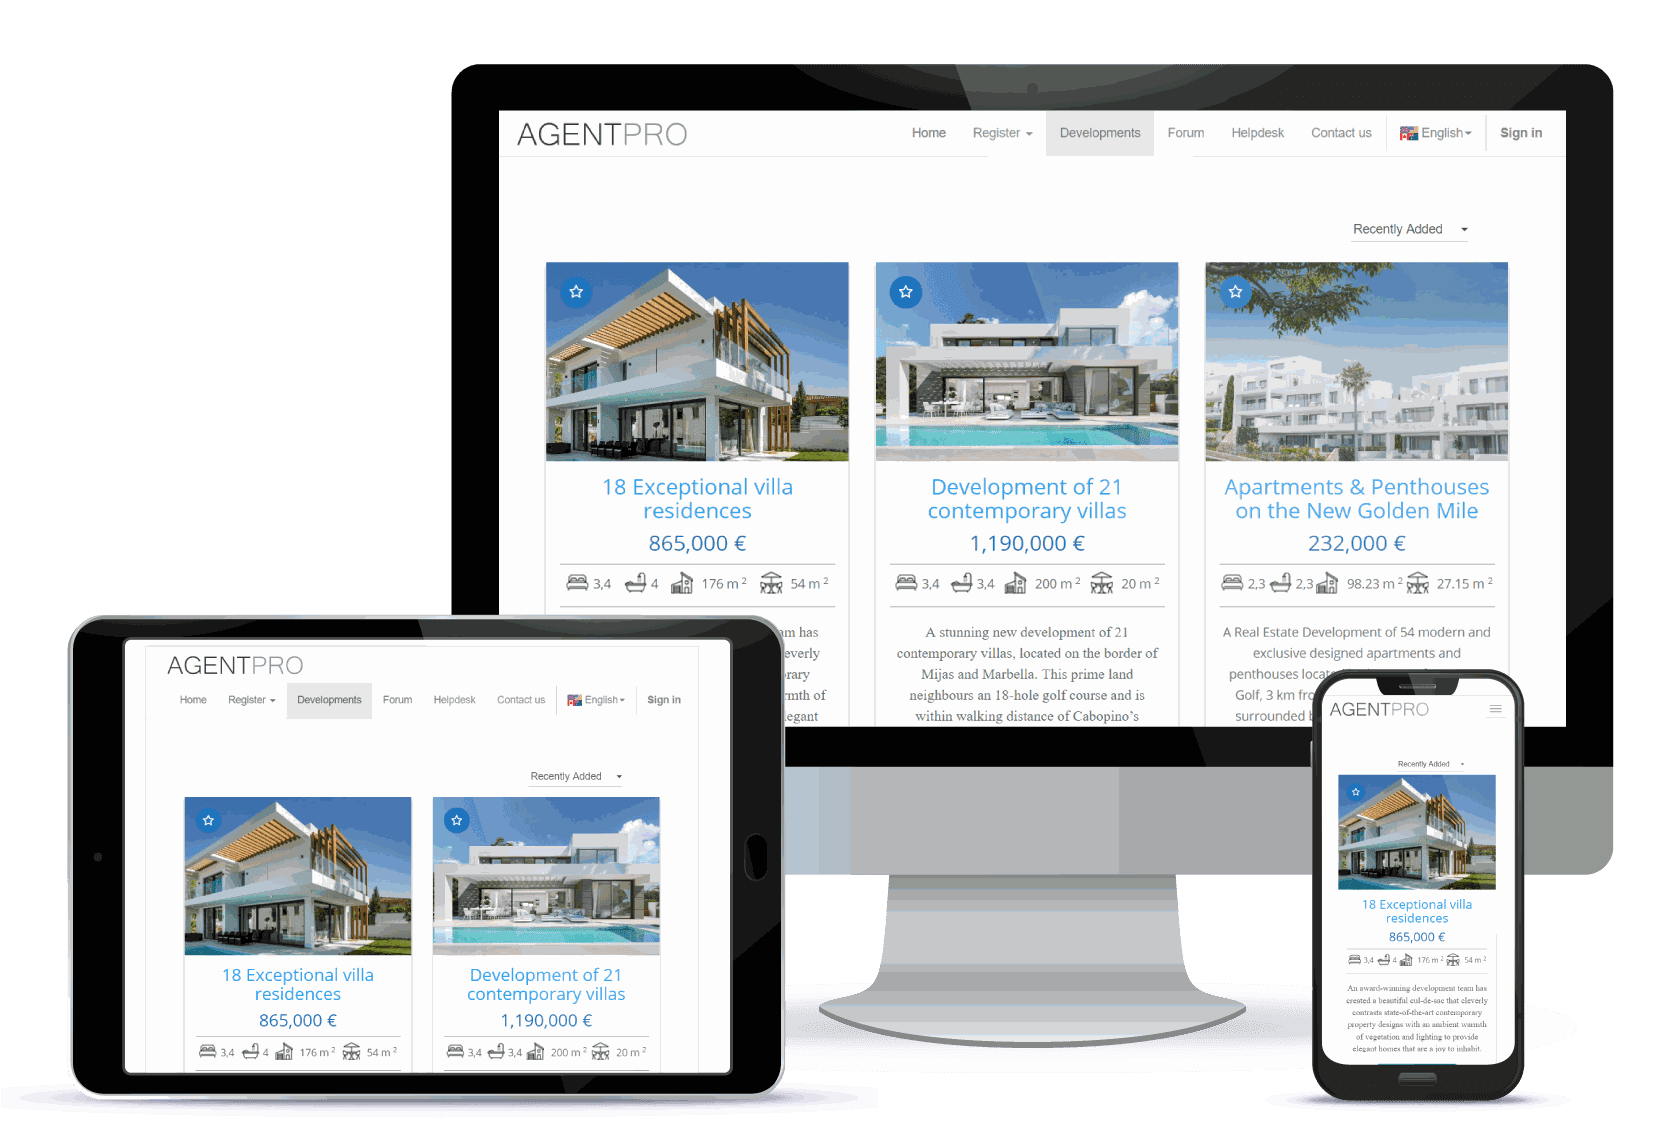 InnoTech - Innovative Web Technology for Real Estate Agents